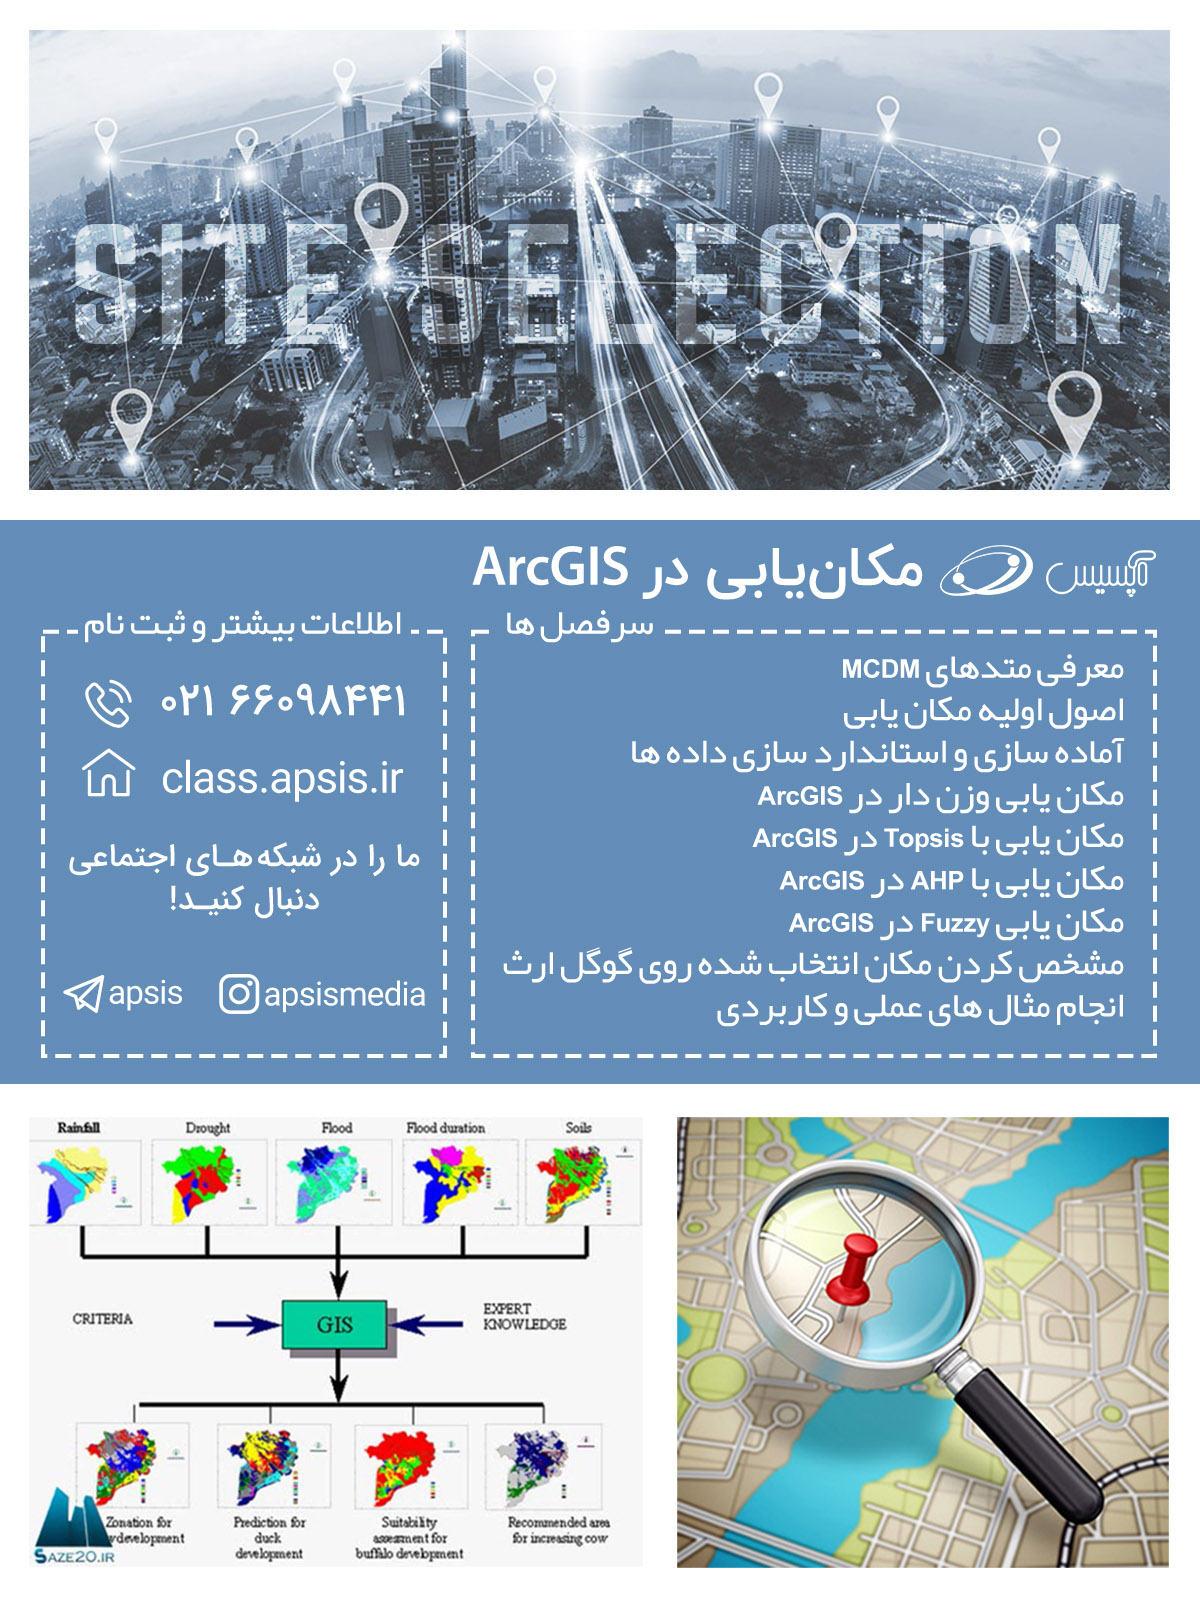 LocationArcGIS_apsis